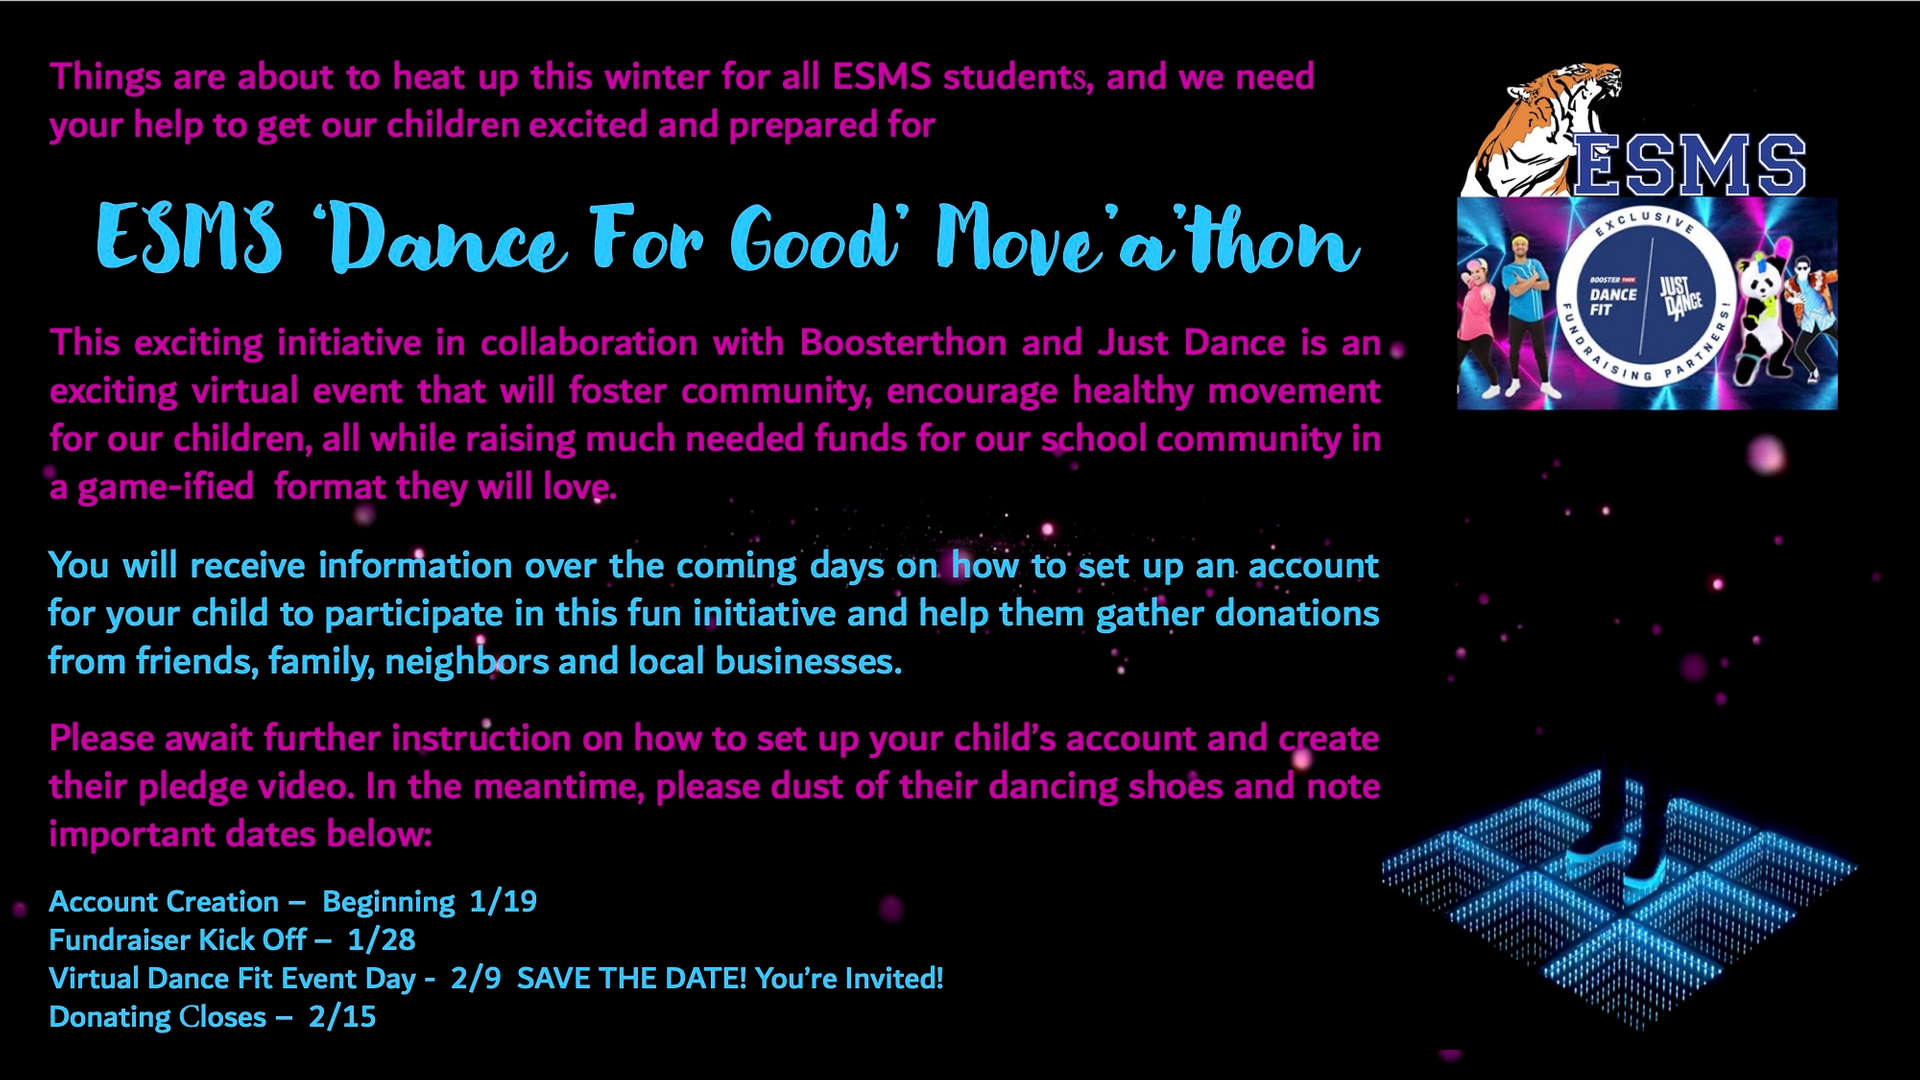 ESMS Dance for Feel Good